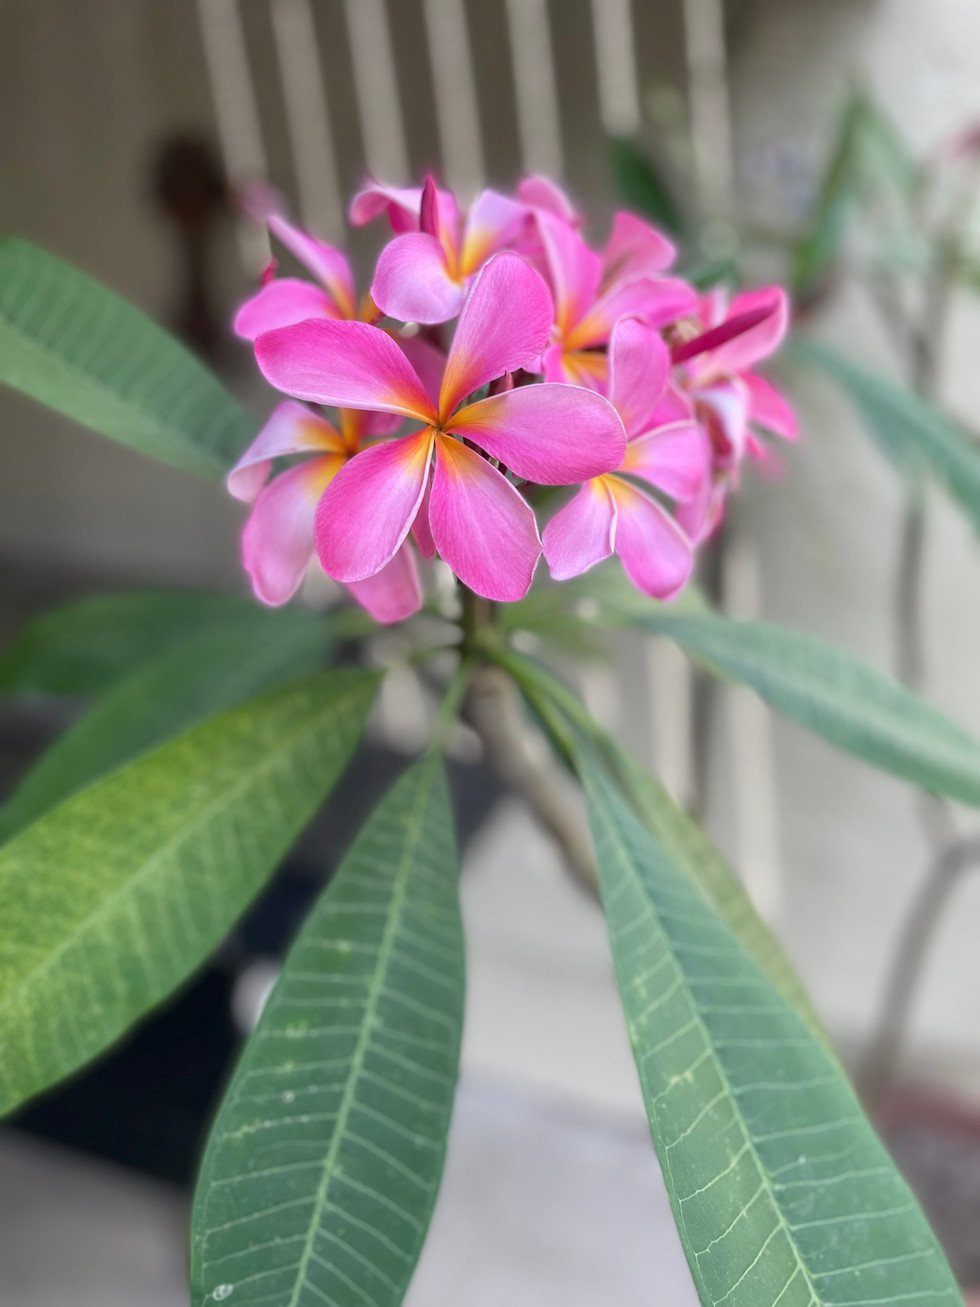 The Plumeria That Lives On